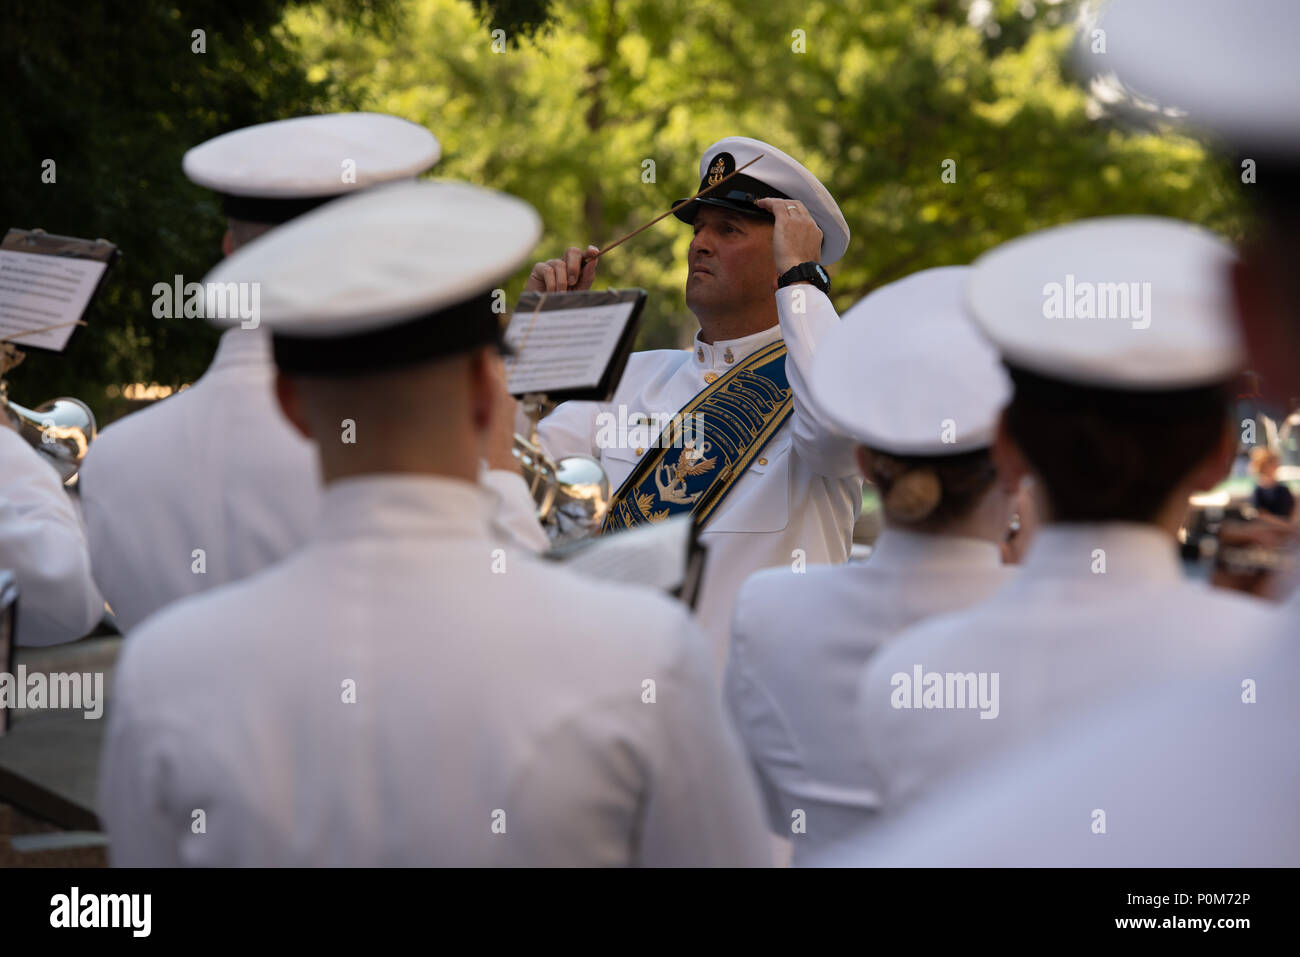 180605-N-HG258-1000 WASHINGTON (June 5, 2018) Senior Chief Musician Michael Bayes, drum major of the U.S. Navy Ceremonial band leads the band at the U.S. Navy Memorial in Washington, D.C., during the commemoration of the 76th anniversary of the Battle of Midway. The Battle of Midway began on June 4 in 1942 and stands as one of the U.S. Navy's most historically significant naval battles. Fought on the high seas of the Pacific more than half a century ago, this battle altered the course of the war in the Pacific and thereby shaped the outcome of world events. (U.S. Navy photo by Senior Chief Mus - Stock Image